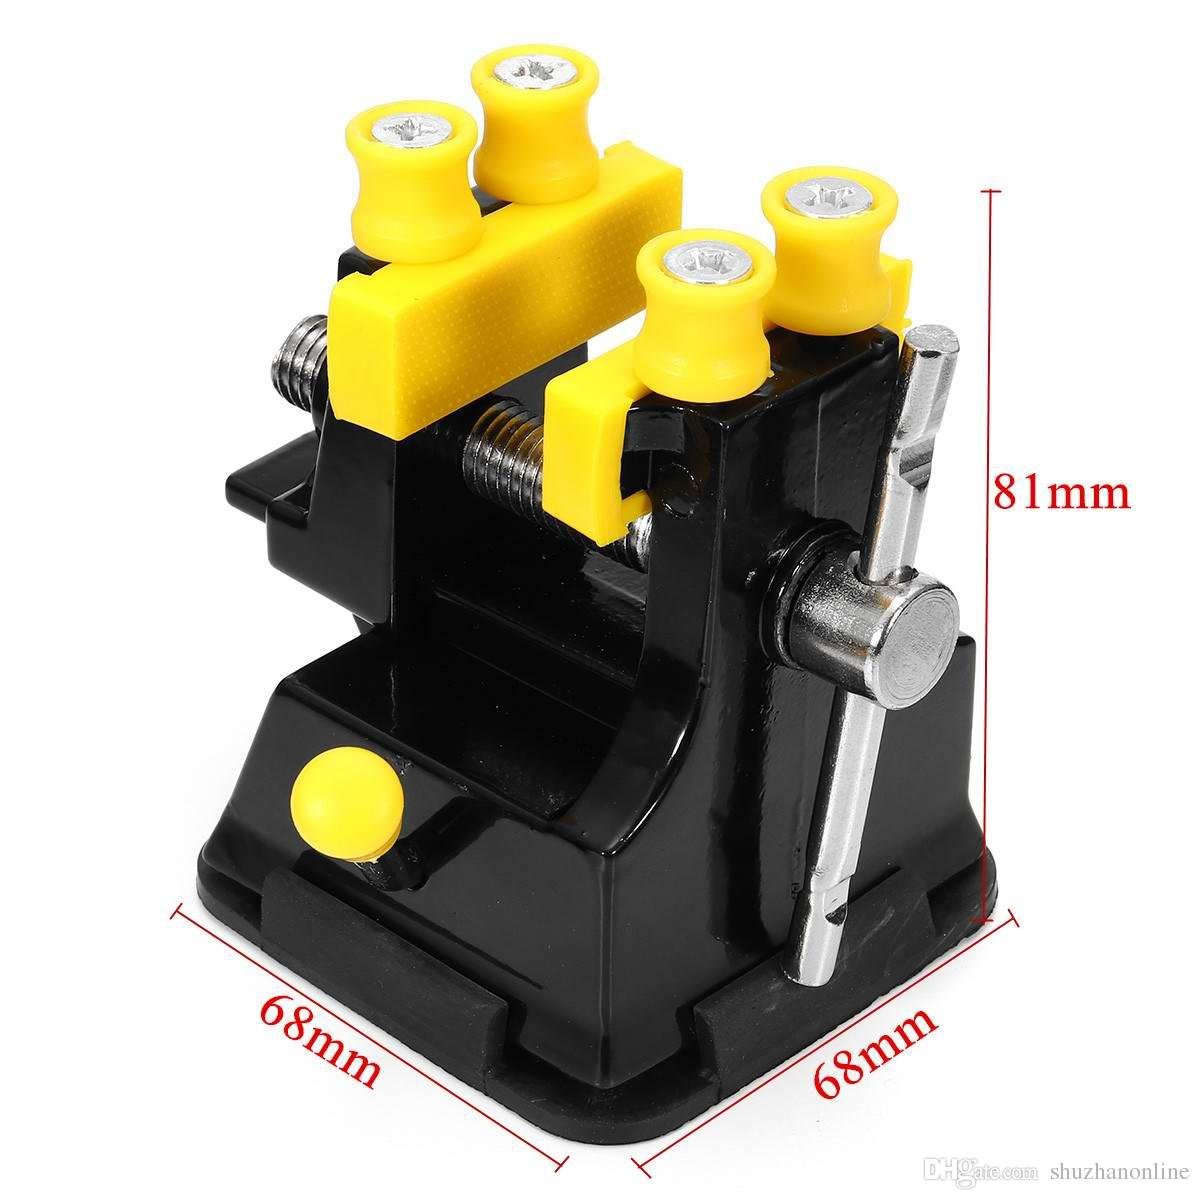 Swell 2019 Engraving Table Mini Bench Vise Clamp With Suction Cup Mini Carving Bench Clamp Drill Diy Tools From Shuzhanonline 9 32 Dhgate Com Onthecornerstone Fun Painted Chair Ideas Images Onthecornerstoneorg